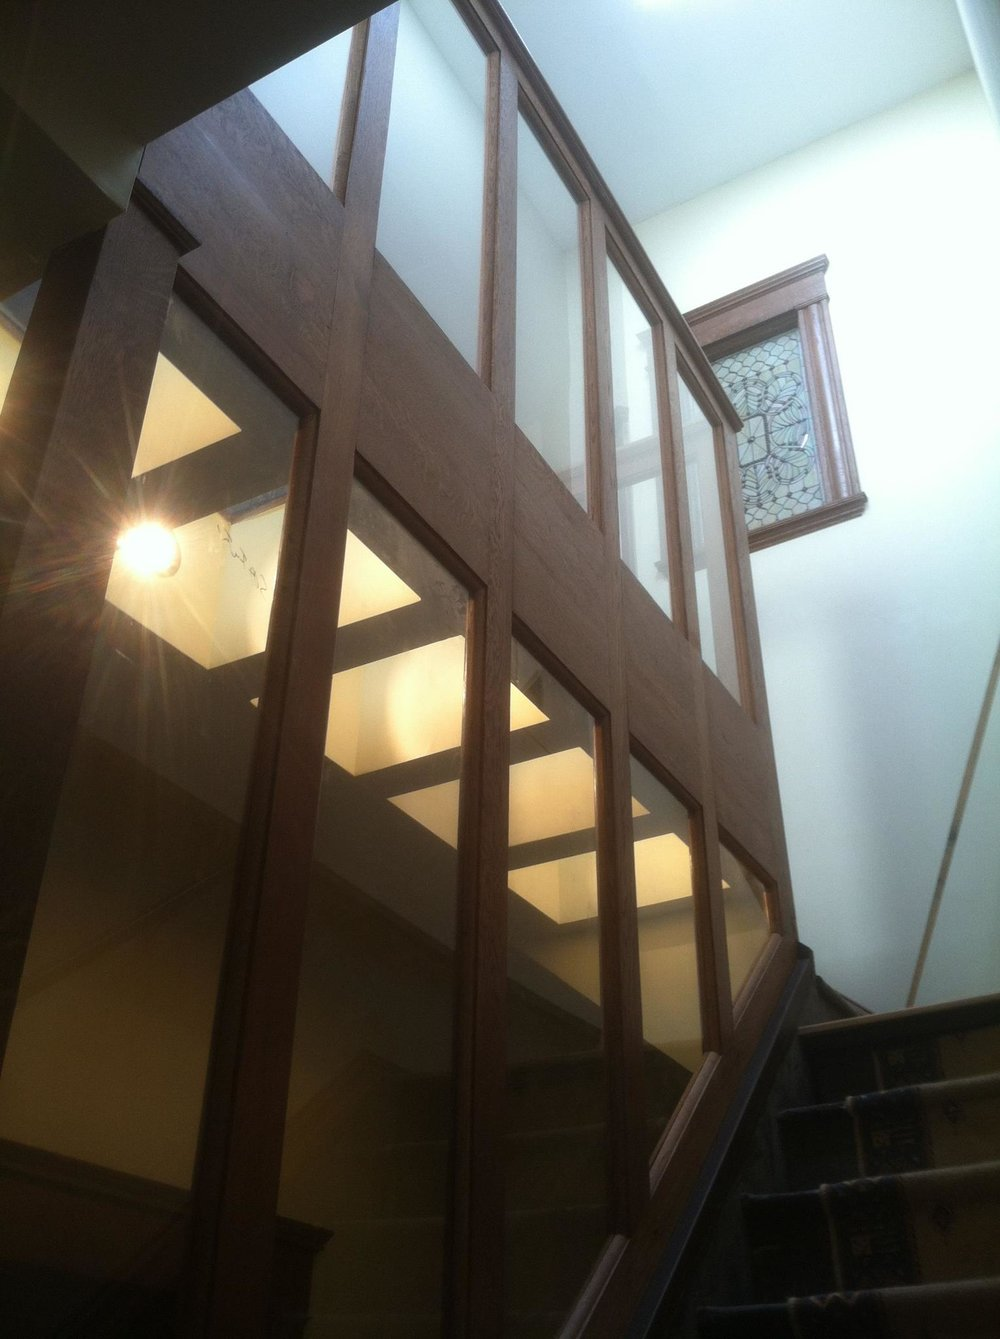 Custom white oak and glass panel stairwell with adjoining glass floor from below. Unique and beautiful!